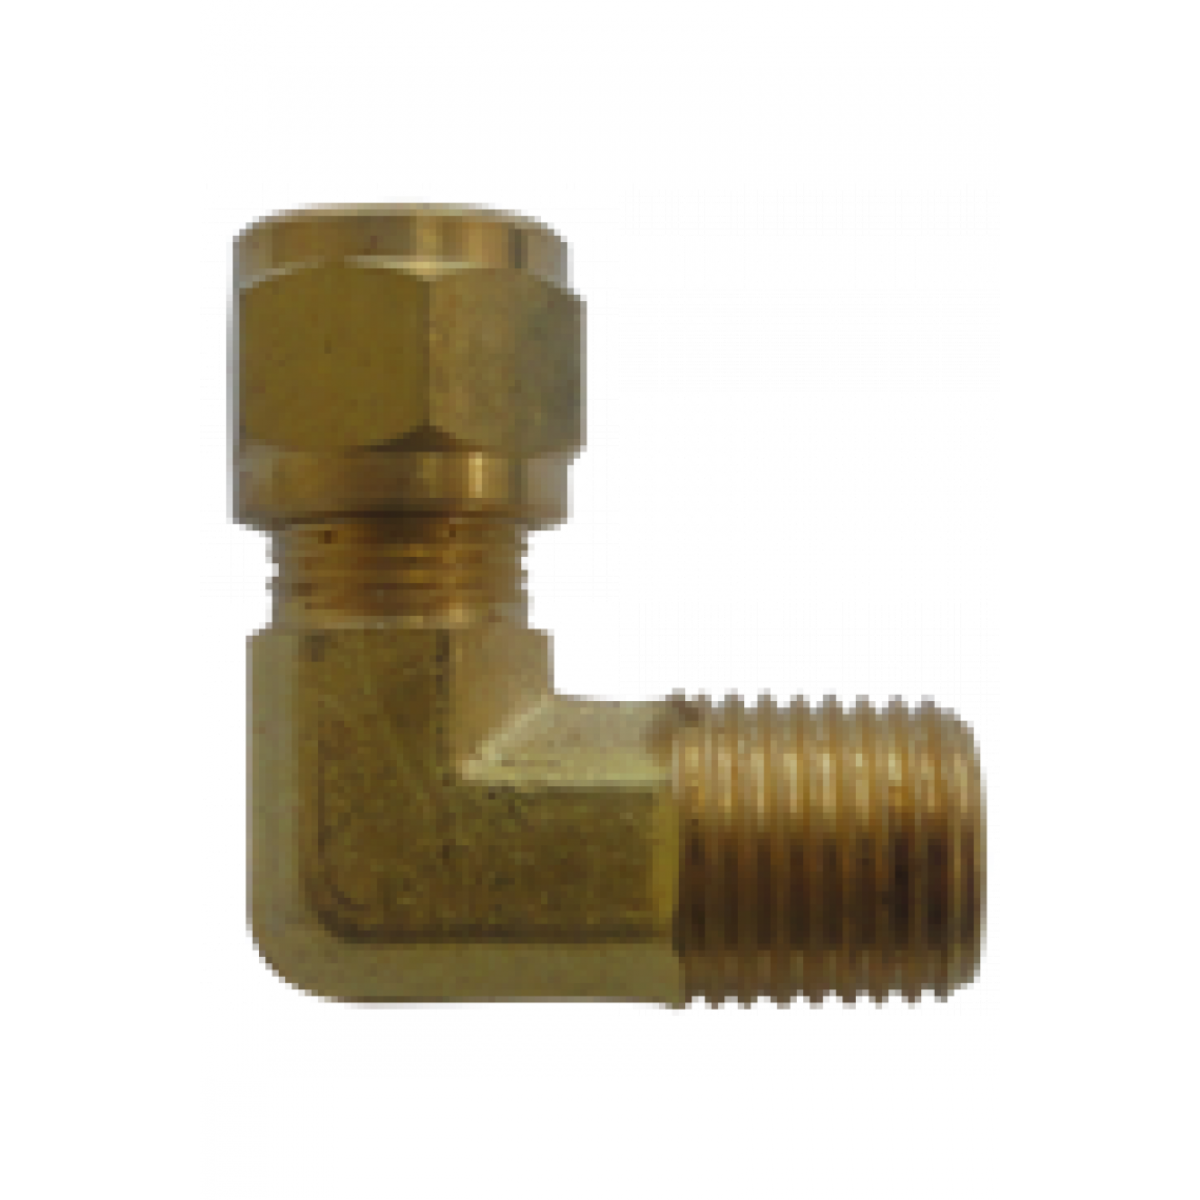 "Easylube Fitting 8mm PU x 1/4"" (M) 90 DEG ANGLE CONNECTOR"